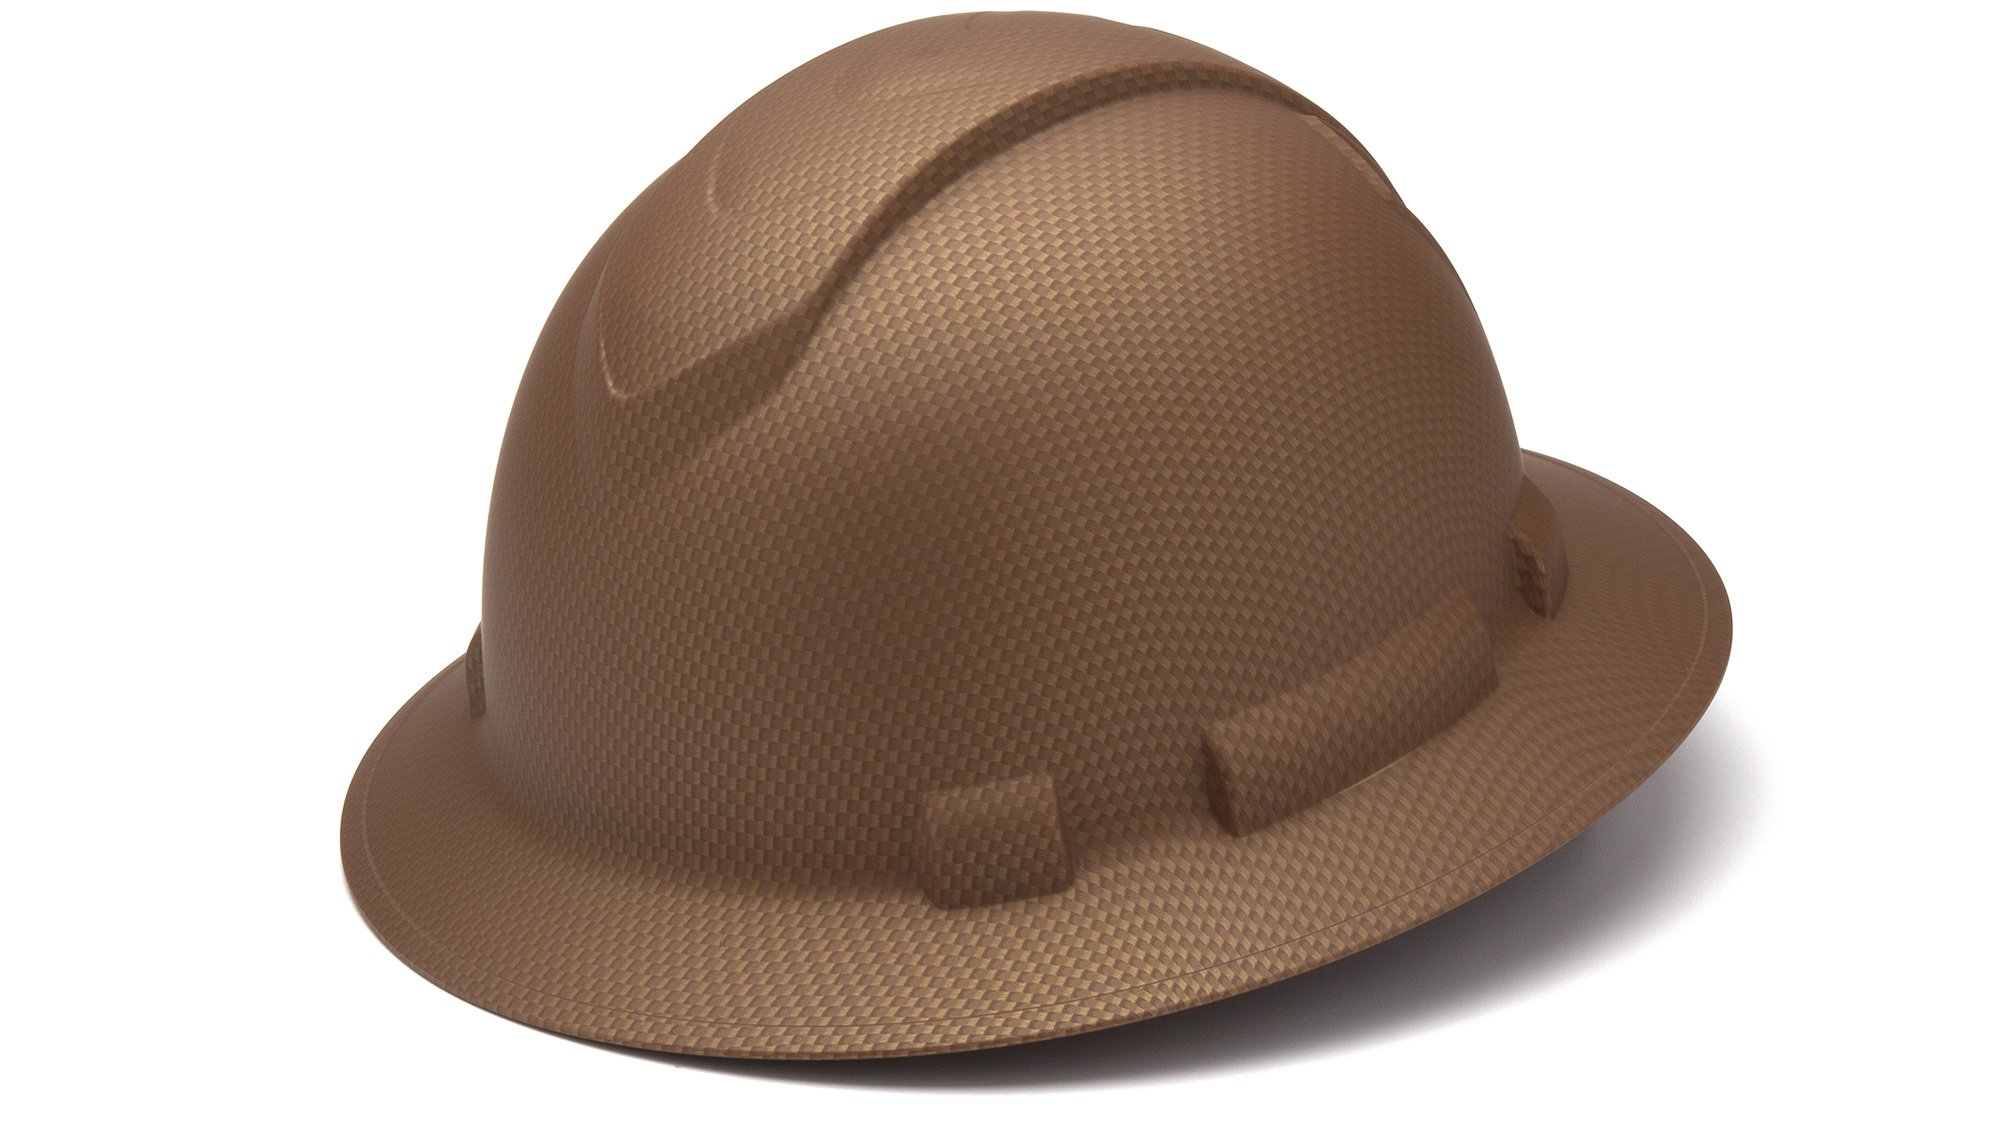 Pyramex HP54118 Ridgeline Copper Pattern Full Brim Ratchet Hard Hat (12 Each) by Pyramex (Image #1)